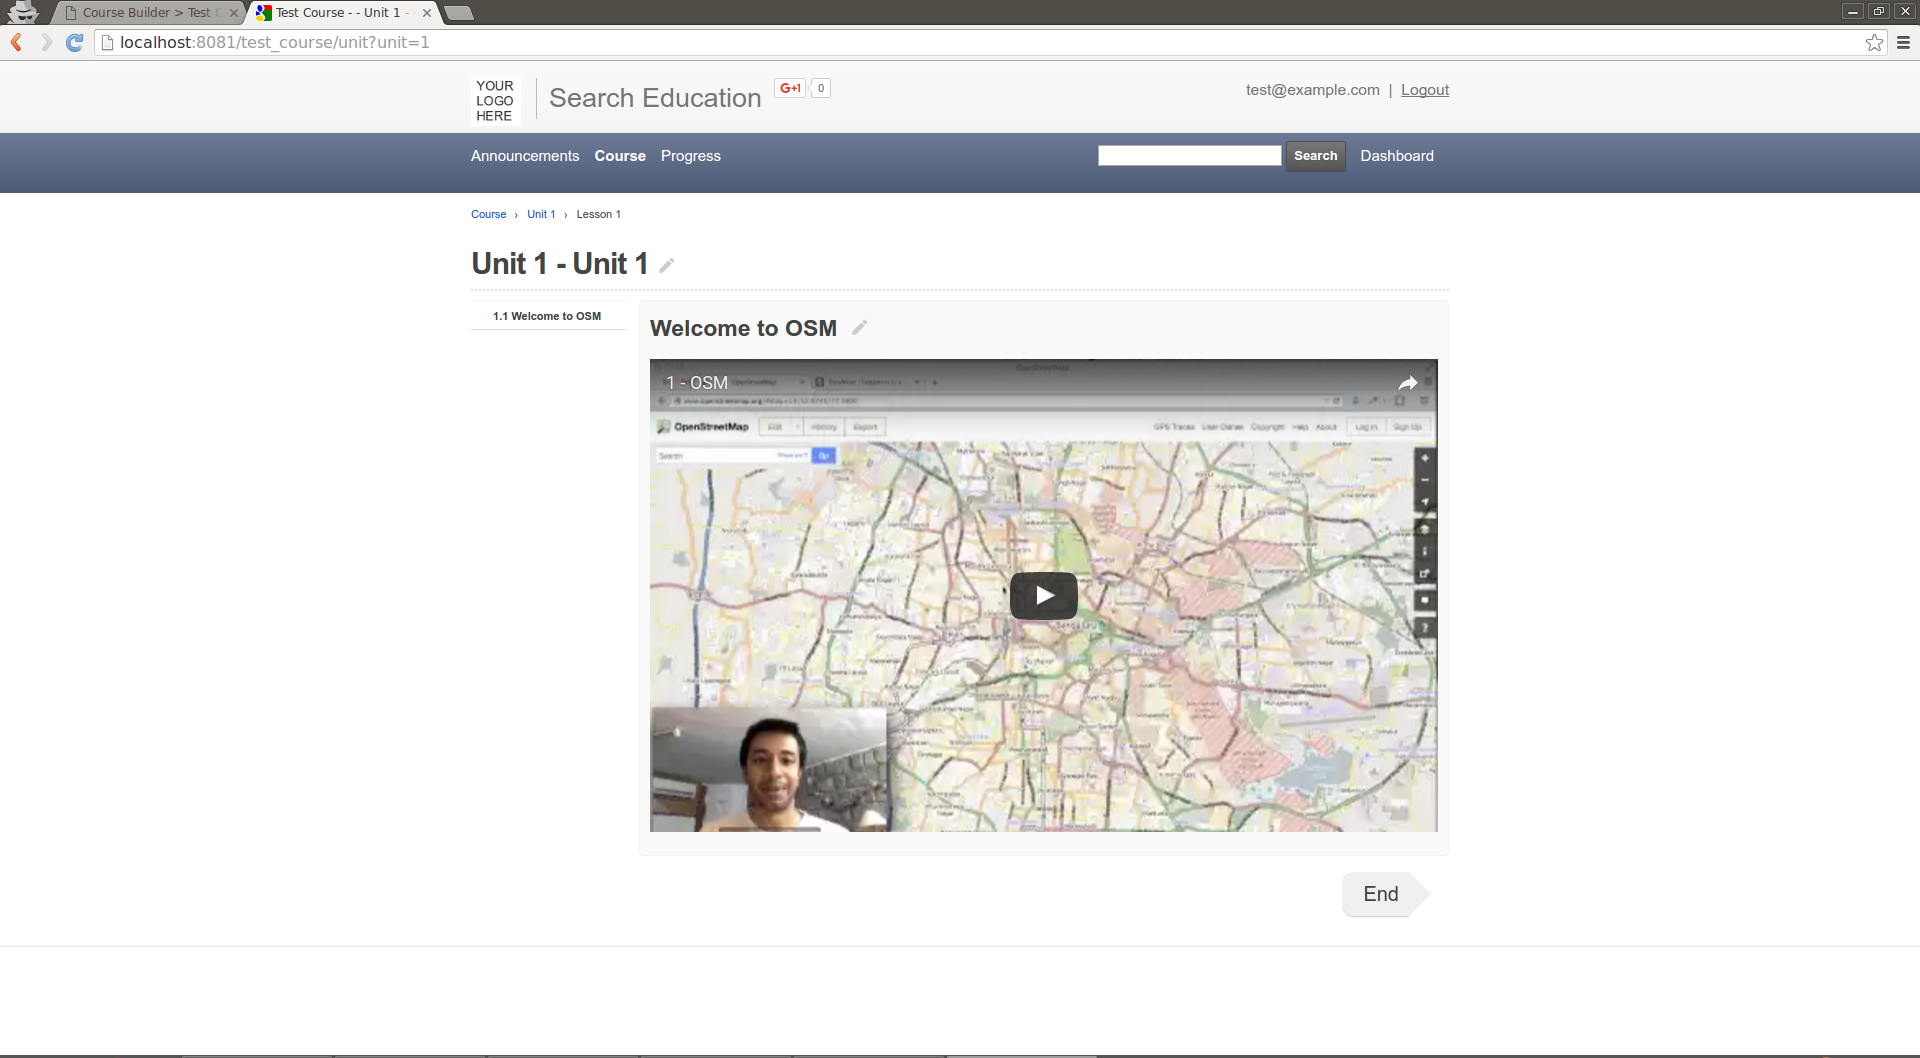 User: Course lesson page